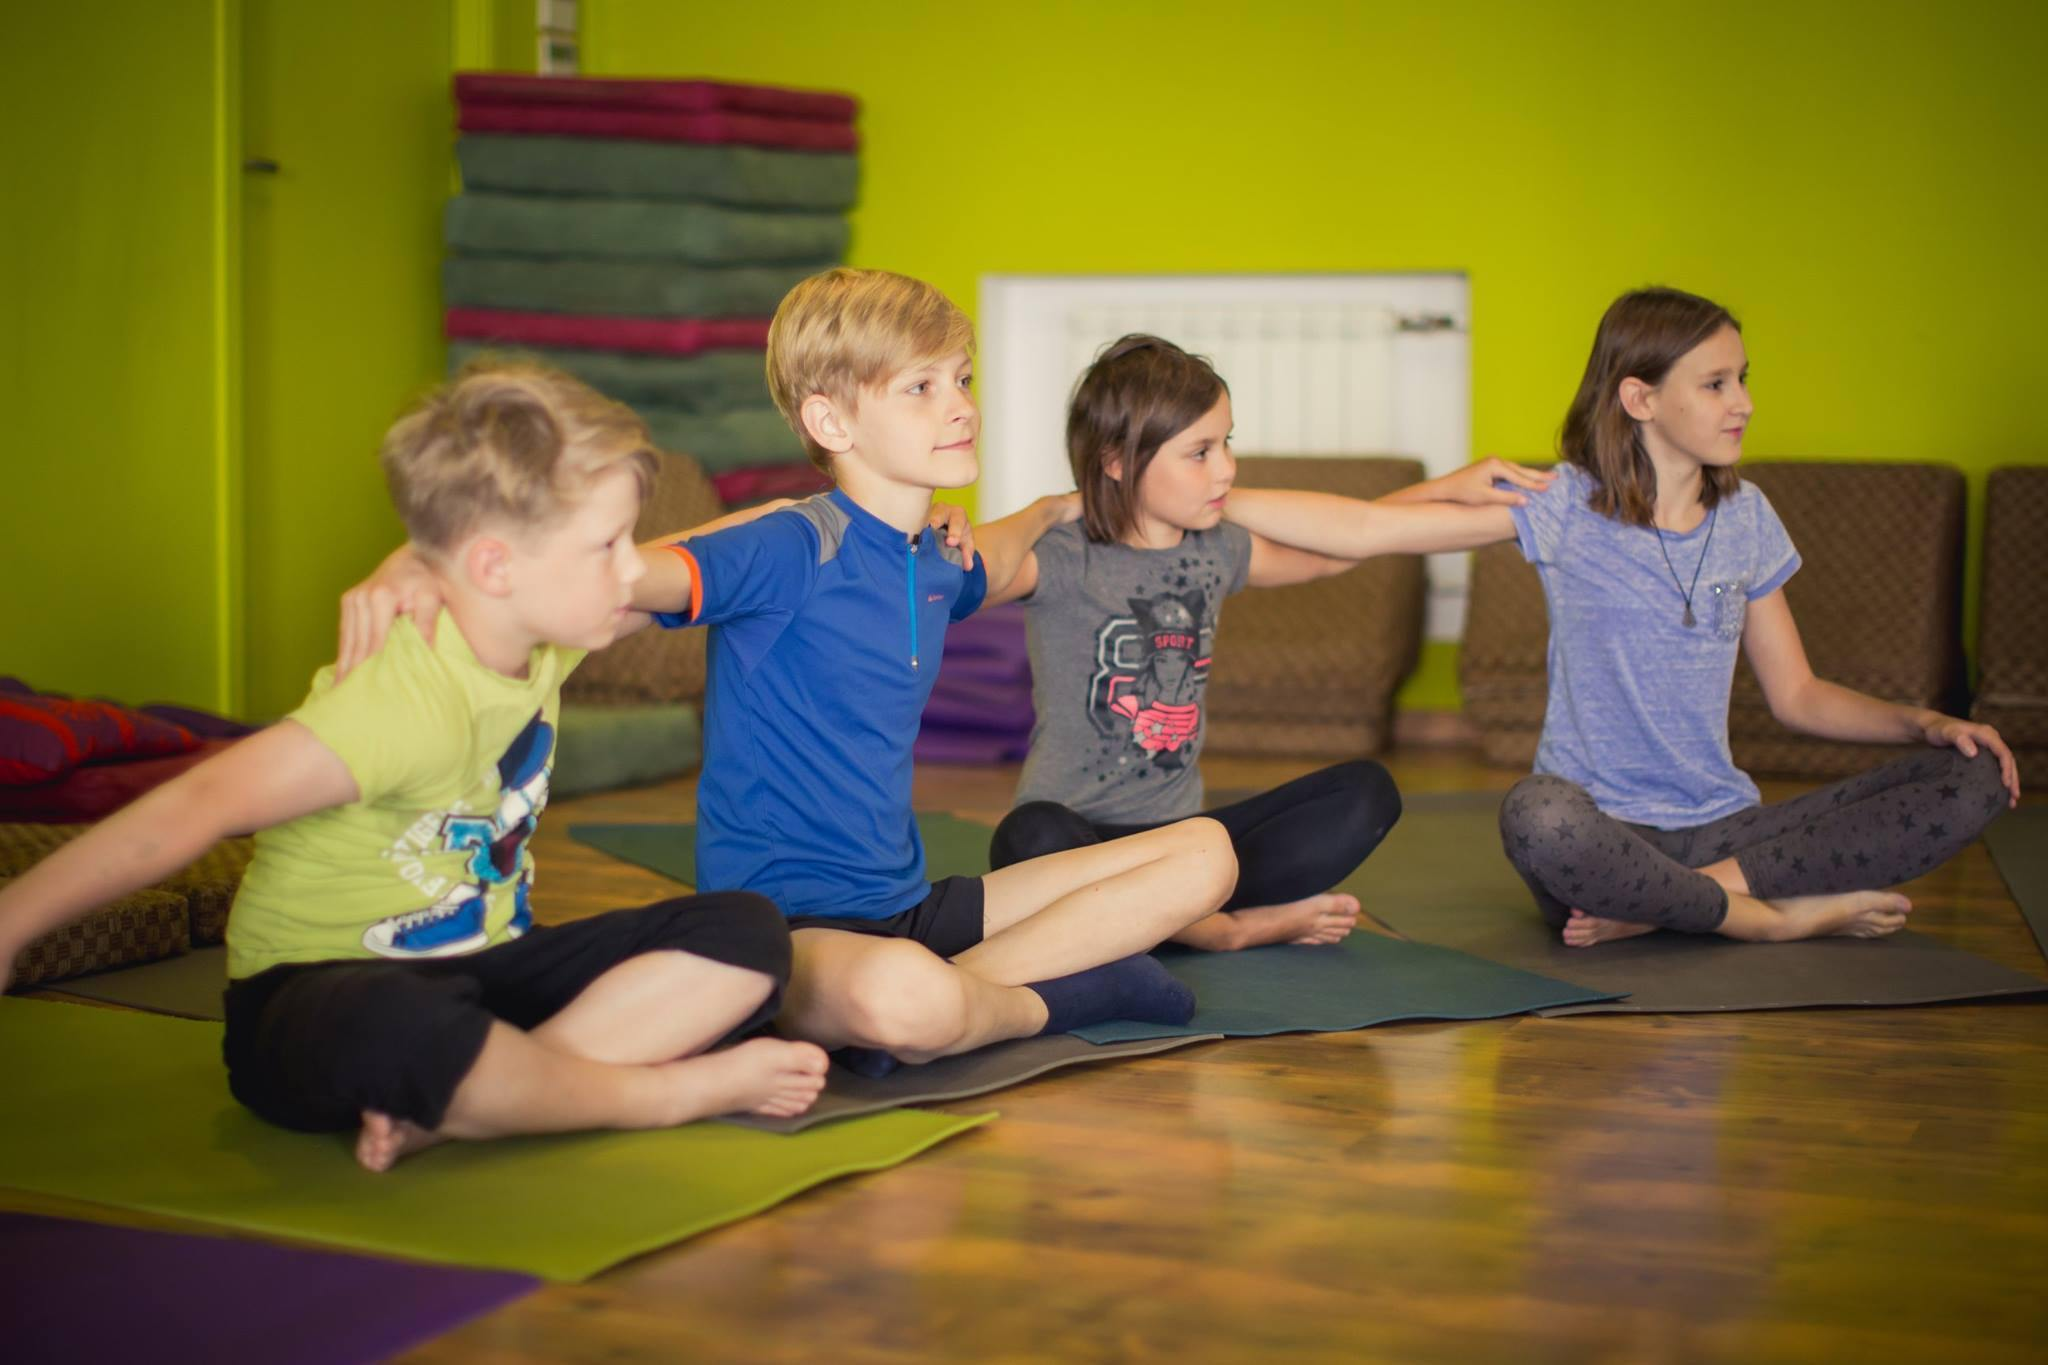 Australia/NZ/SE Asia - Level 1, 4 Day Live Stream Kids Yoga Teacher Training - RainbowYogaTraining